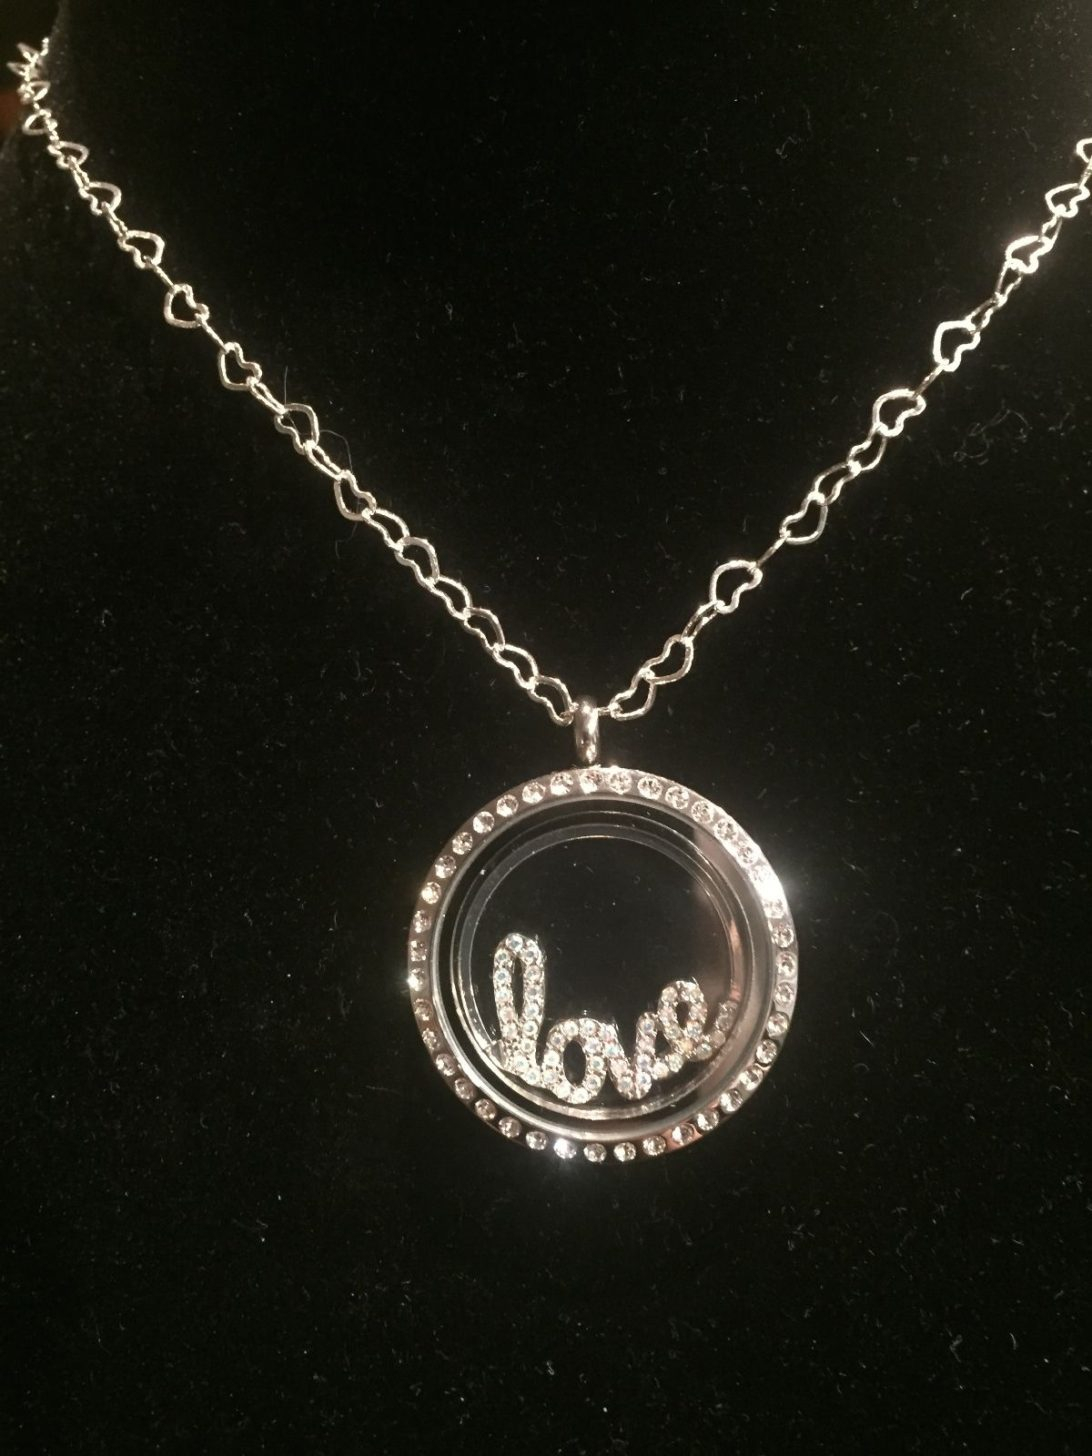 Origami Owl Over The Heart Chain Origami Owl Earrings Lanyard Watch Necklace Amazon Catalog Chains